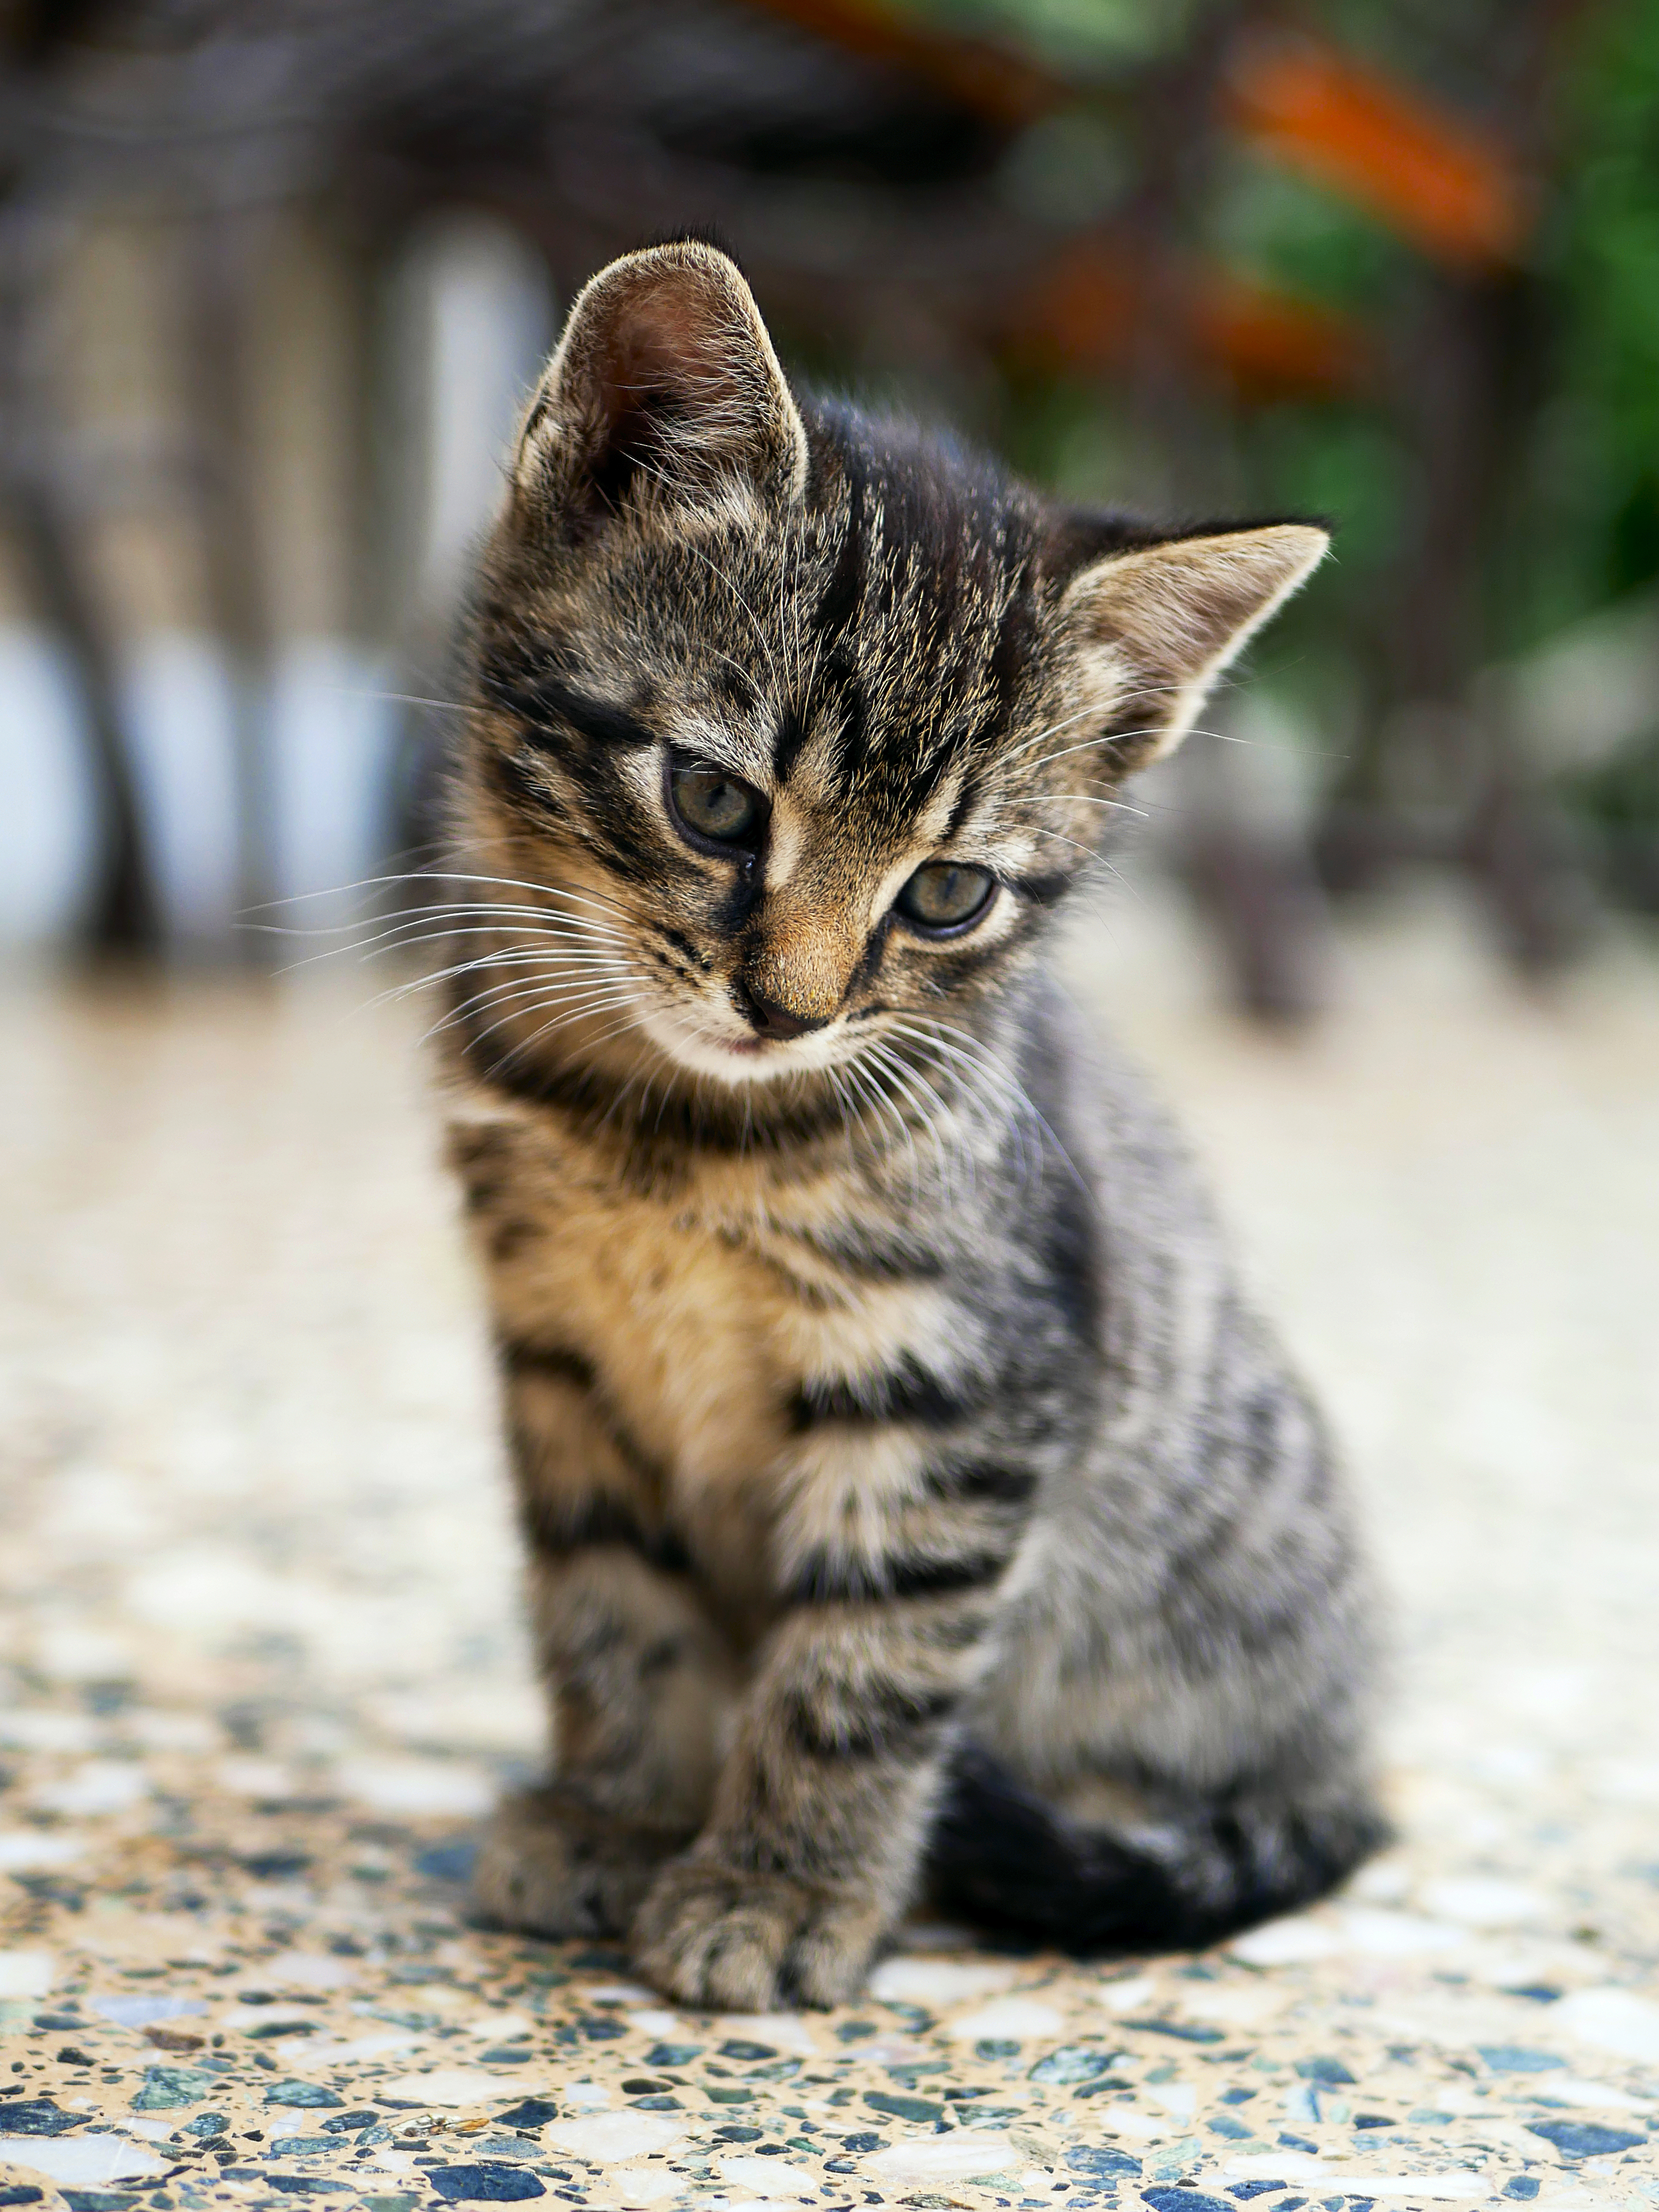 Cute Baby Puppy Pictures Wallpaper 100 Kitten Images Download Free Images On Unsplash